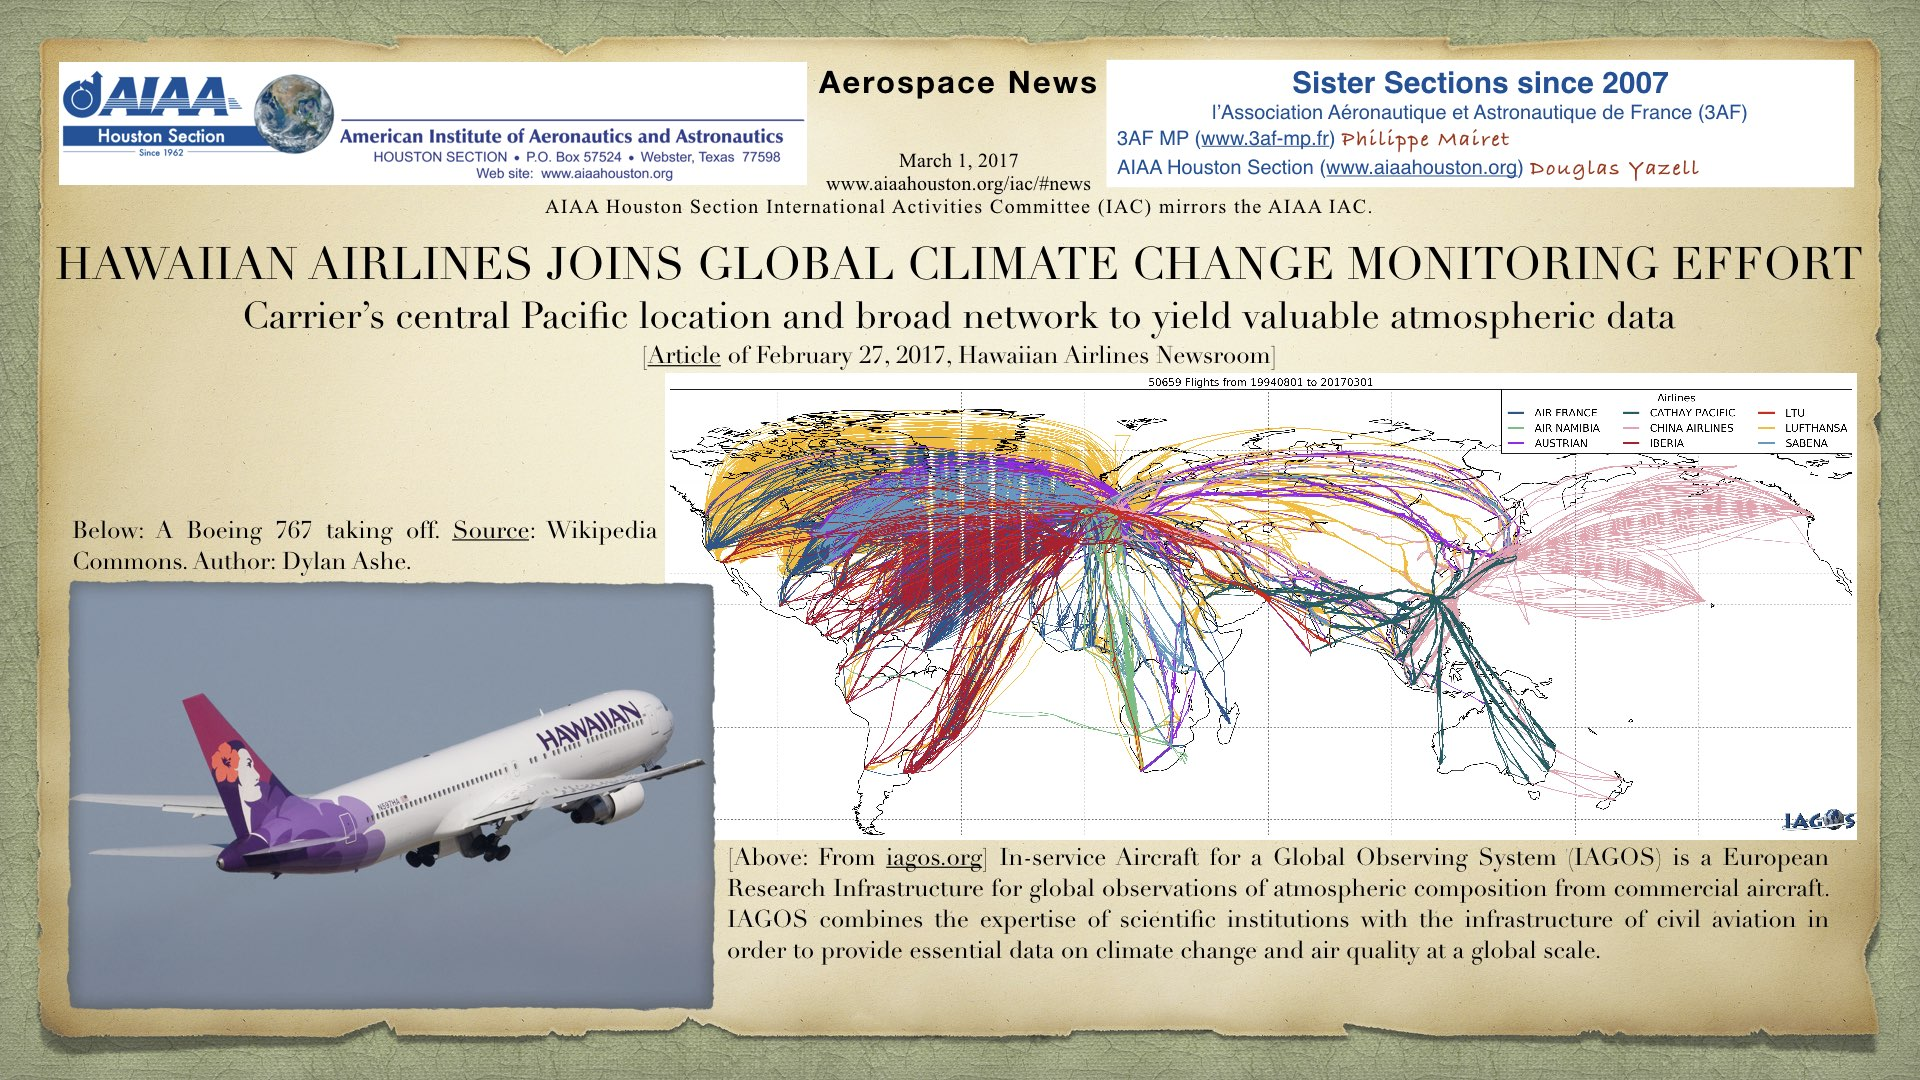 Above: Hawaiian Airlines Joins Global Climate Change Monitoring Effort. (Click to zoom.)